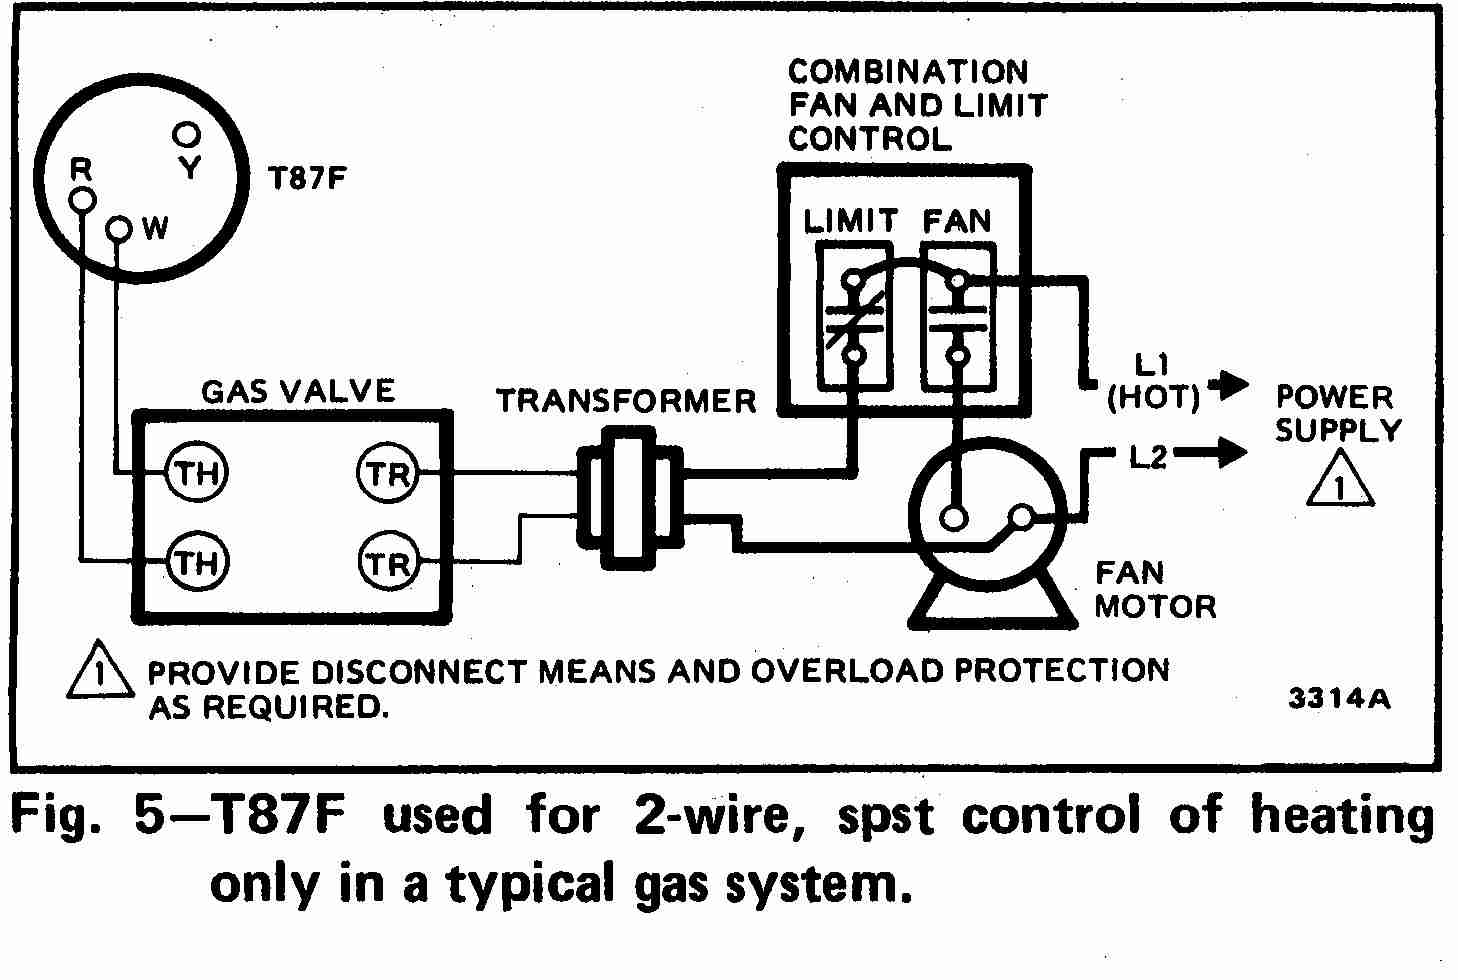 TT_T87F_0002_2Wg_DJF space heater wiring diagram s700 electric heater wire diagram Basic Outlet Wiring Diagrams at n-0.co